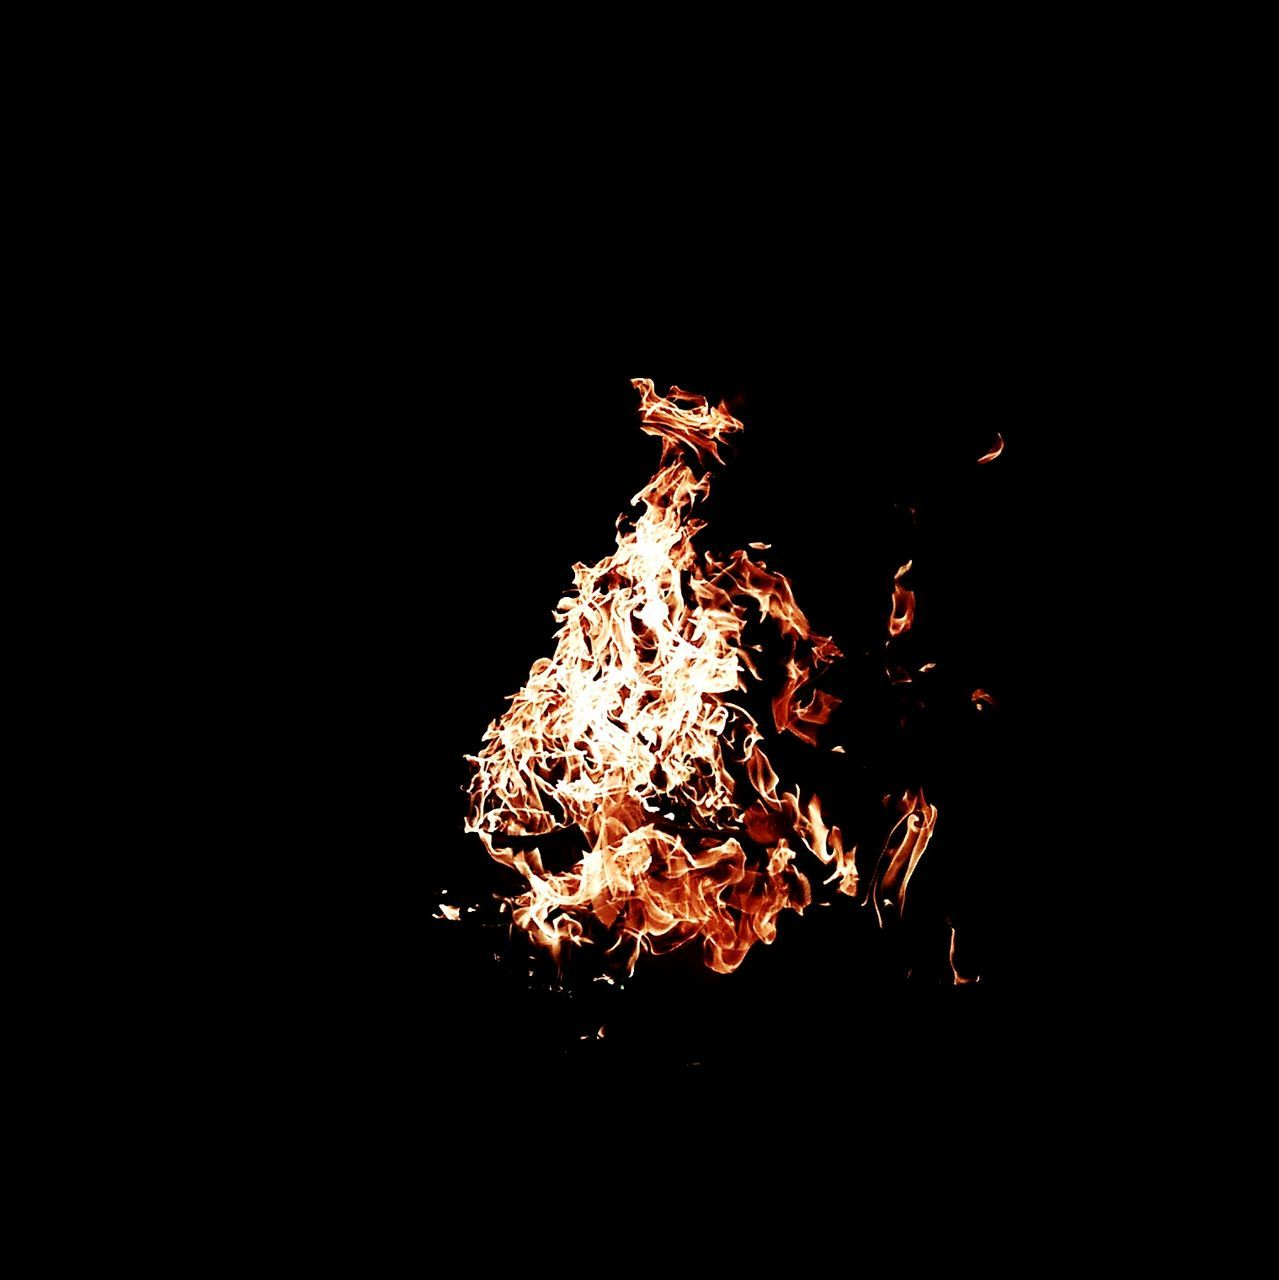 burning, night, flame, no people, heat - temperature, bonfire, motion, outdoors, black background, illuminated, fire pit, close-up